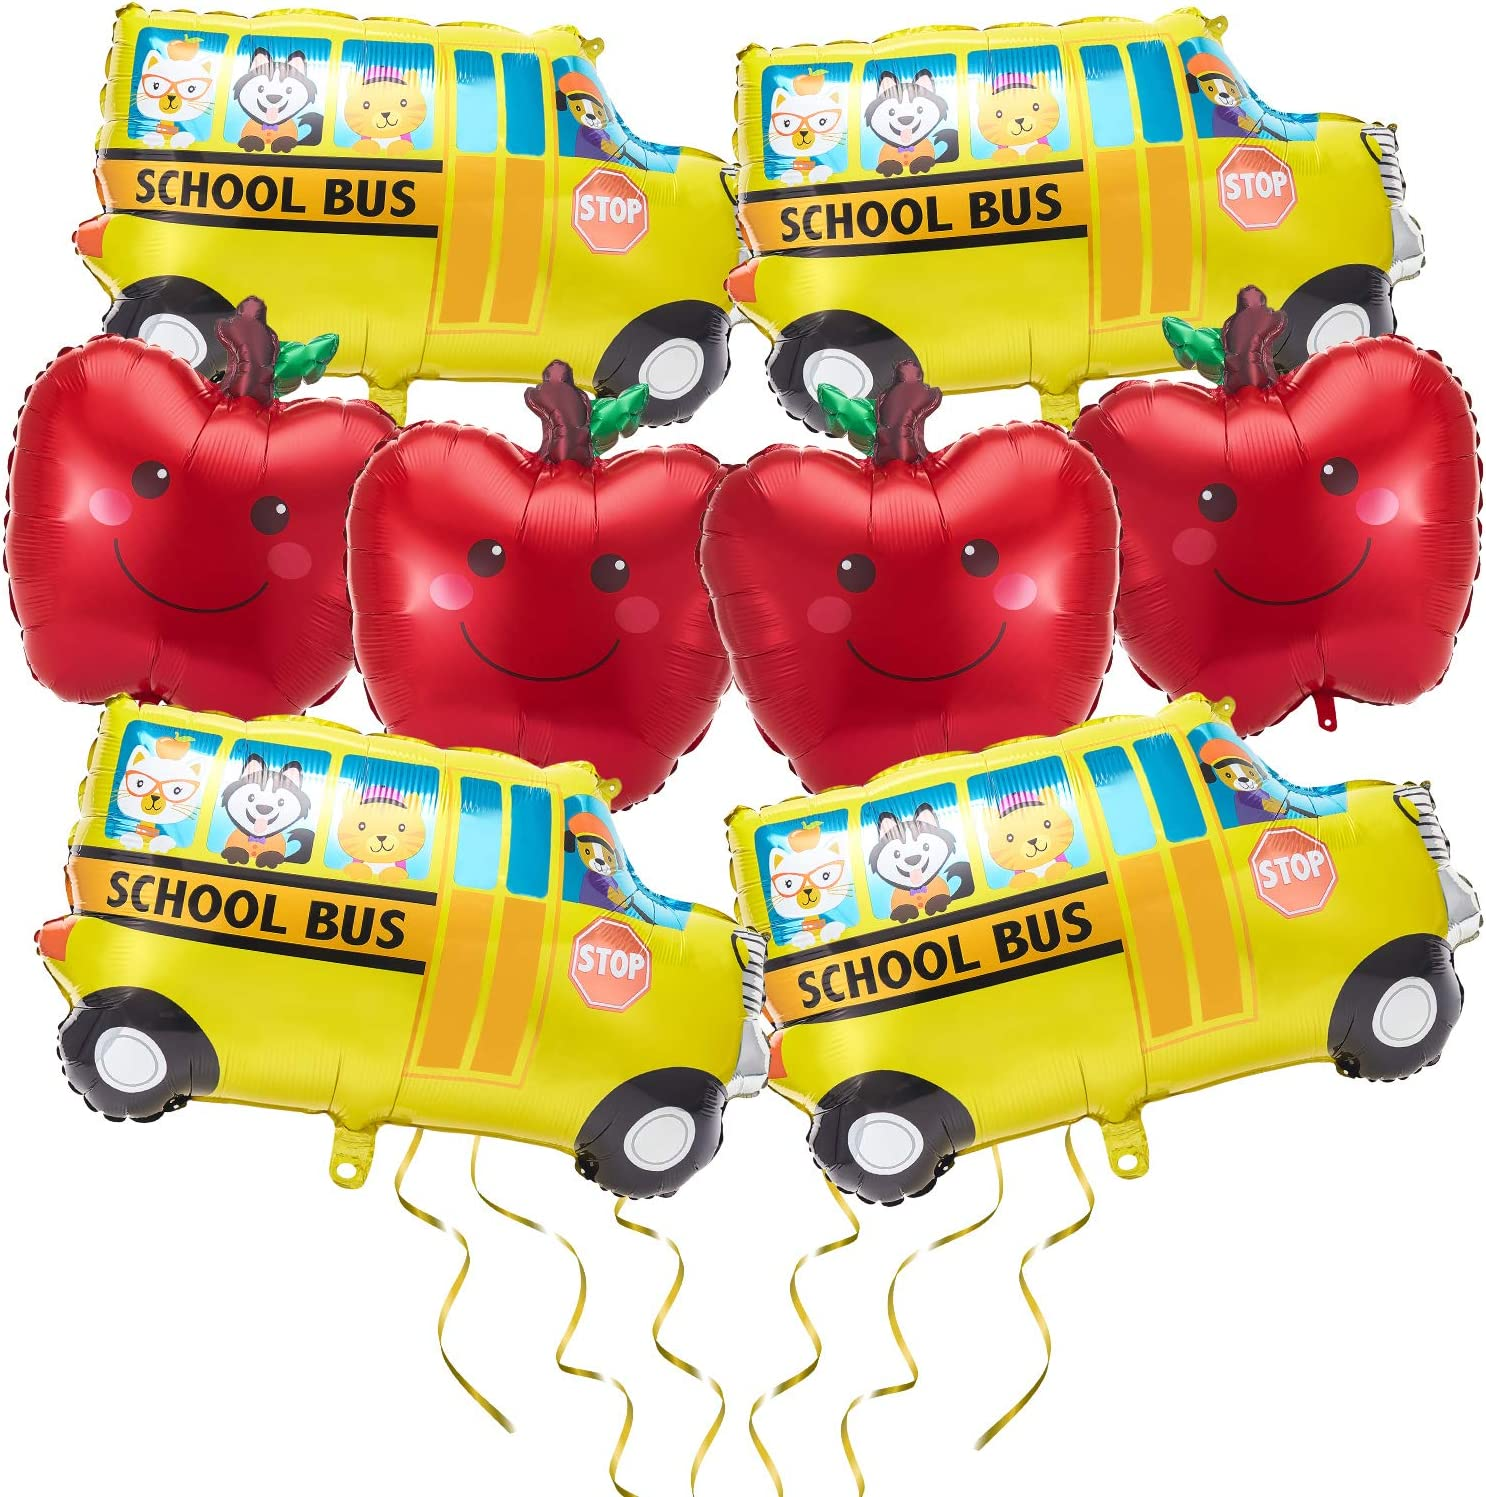 8 Pieces School Bus Foil Balloon Car Balloons and Red Fruit Balloons Party Decoration Large Size for Back to School Birthday Baby Shower Wedding